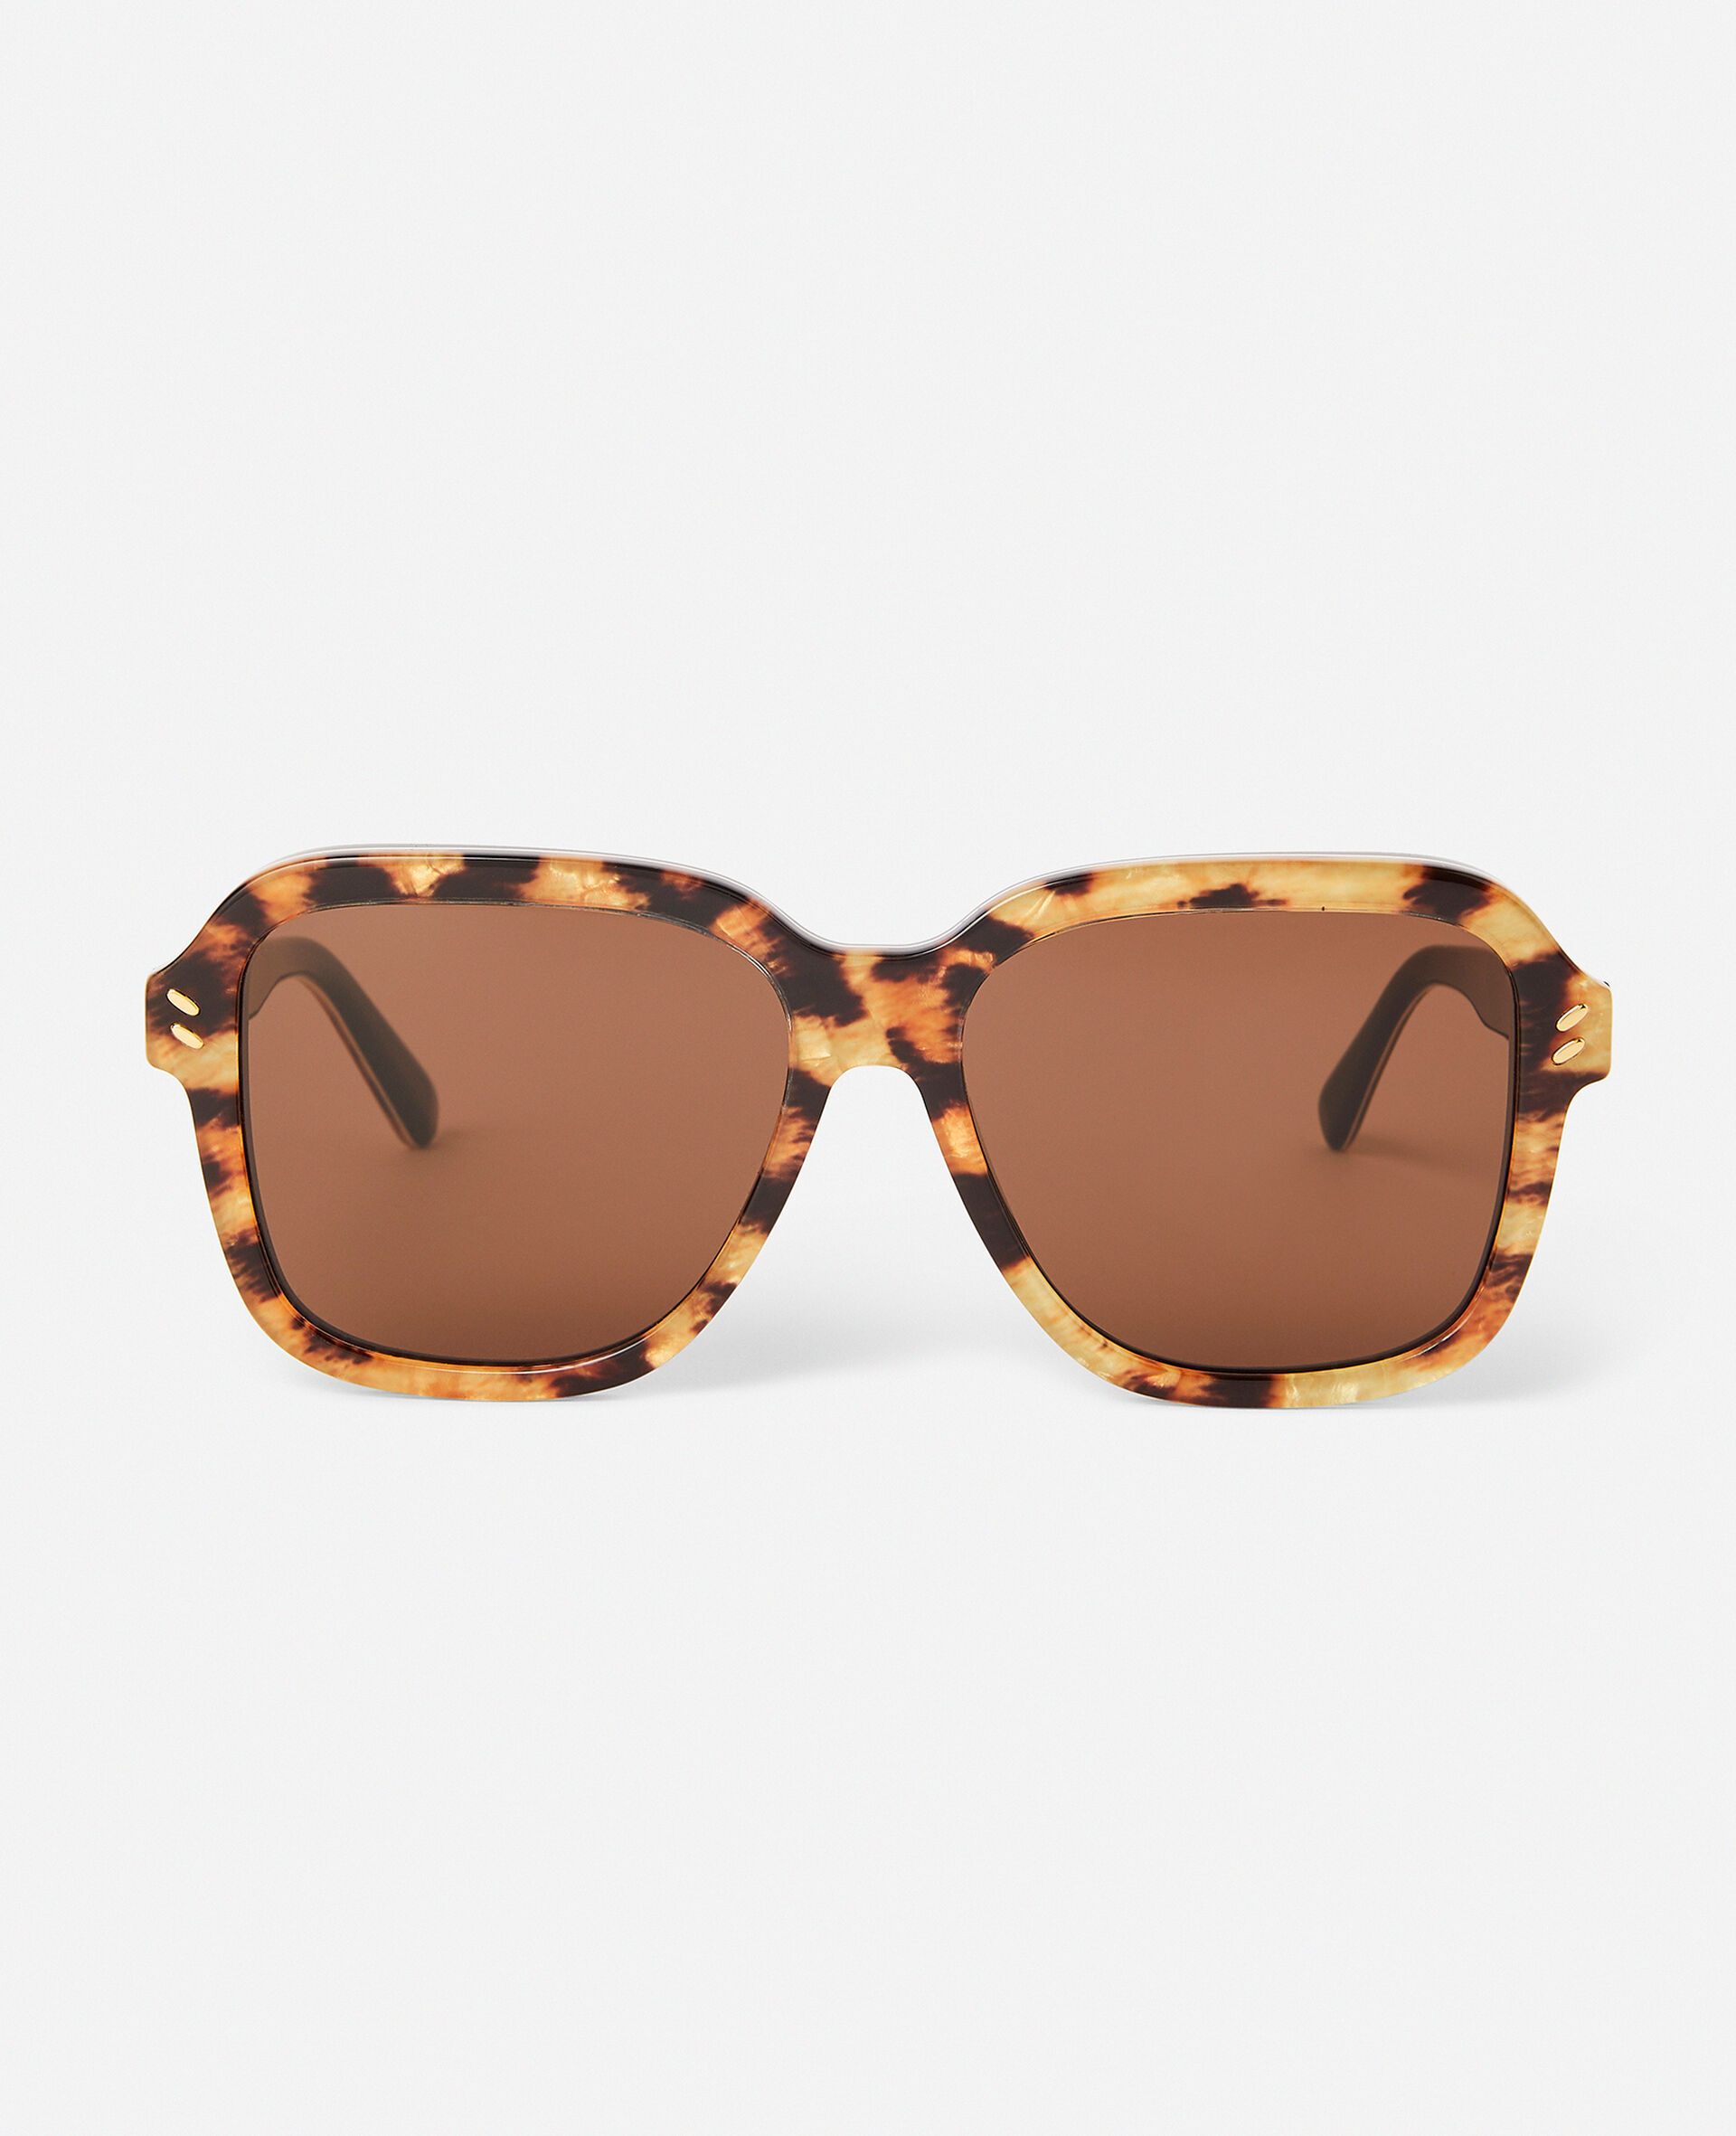 Leopard Square Sunglasses-Brown-large image number 5